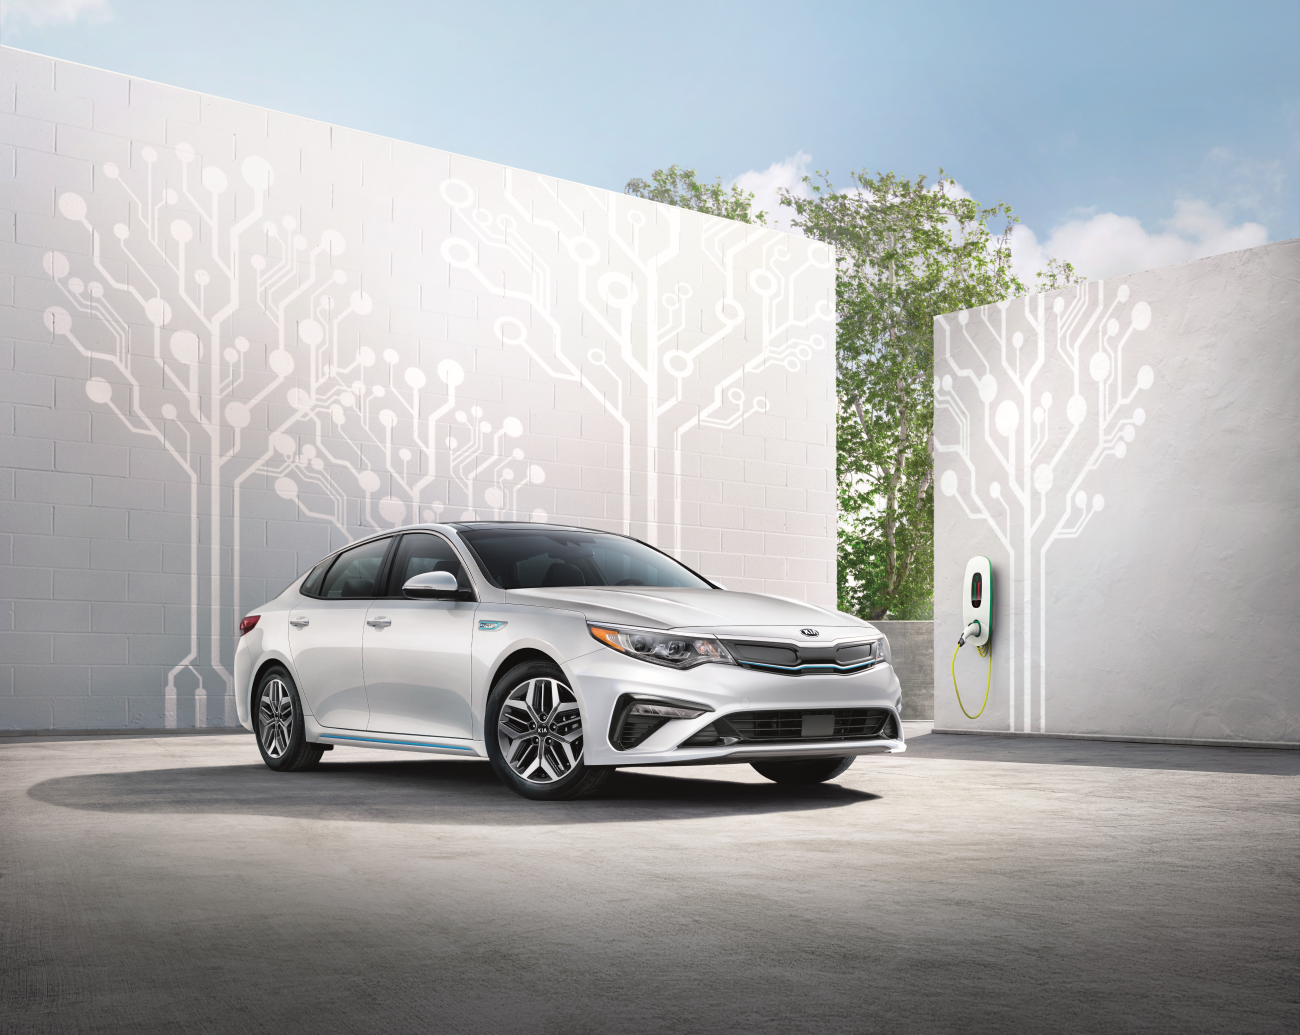 Kia Hybrids & EVs available in Leesburg, VA at Dulles Kia